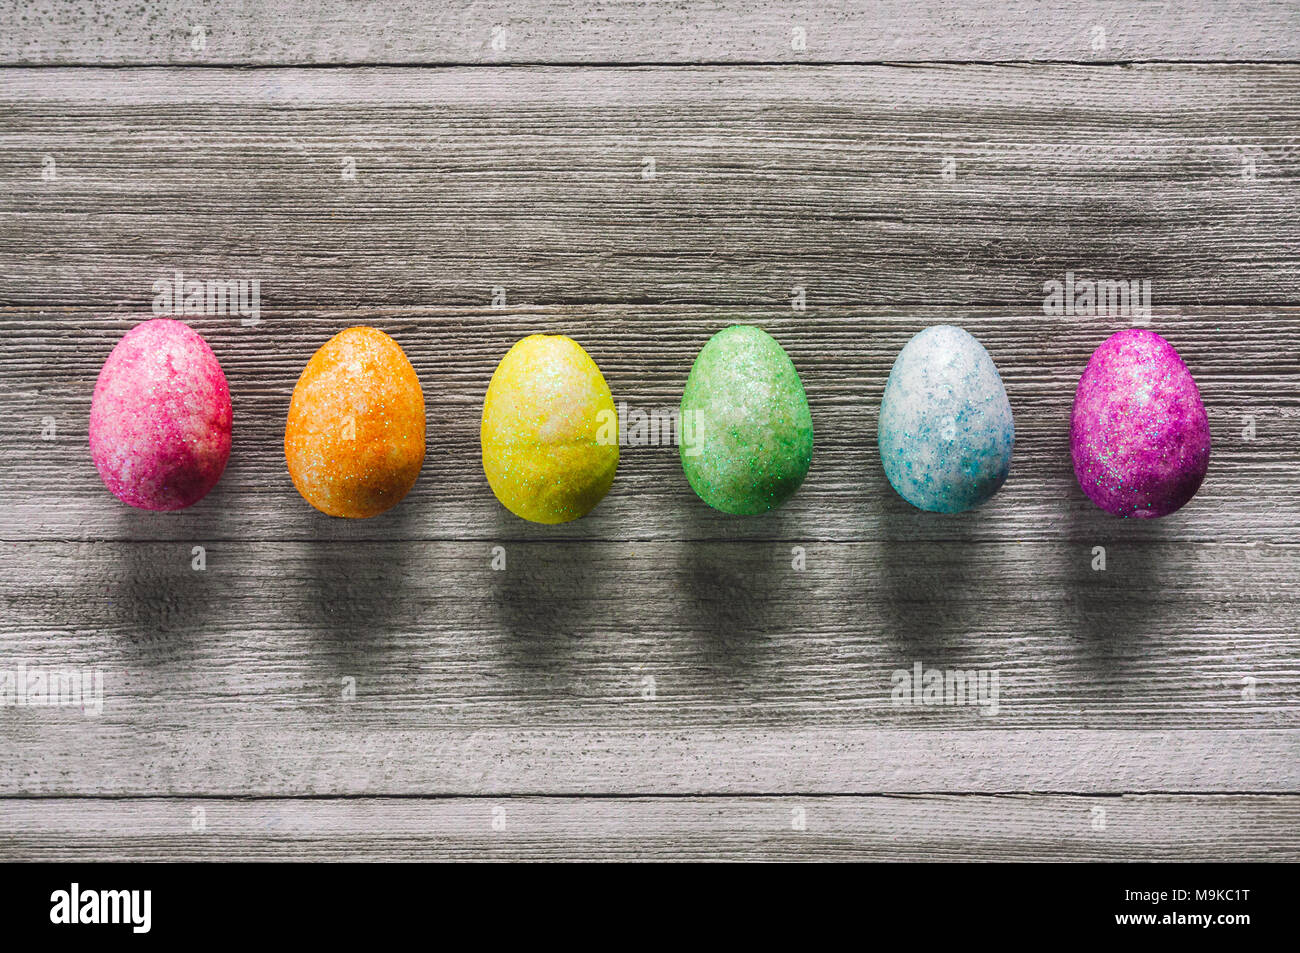 Rainbow Eggs on White Rustic Table - Stock Image